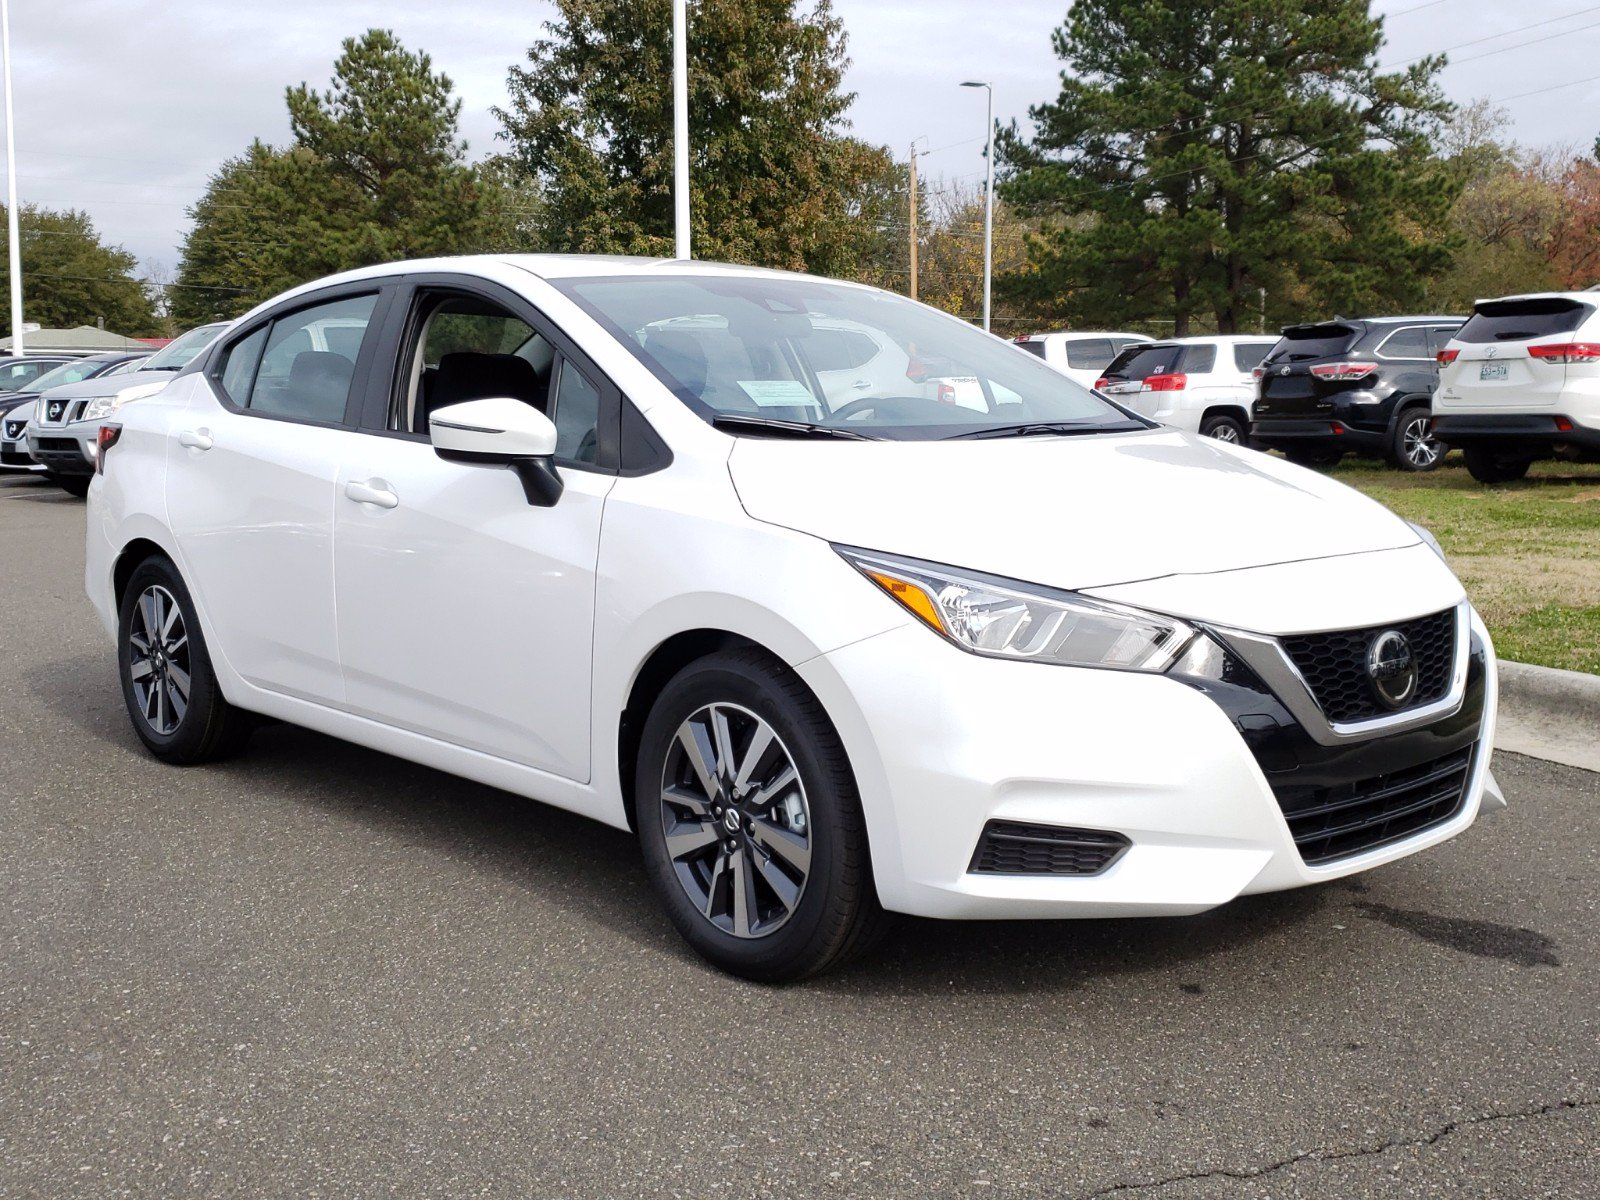 New 2020 Nissan Versa SV FWD 4dr Car